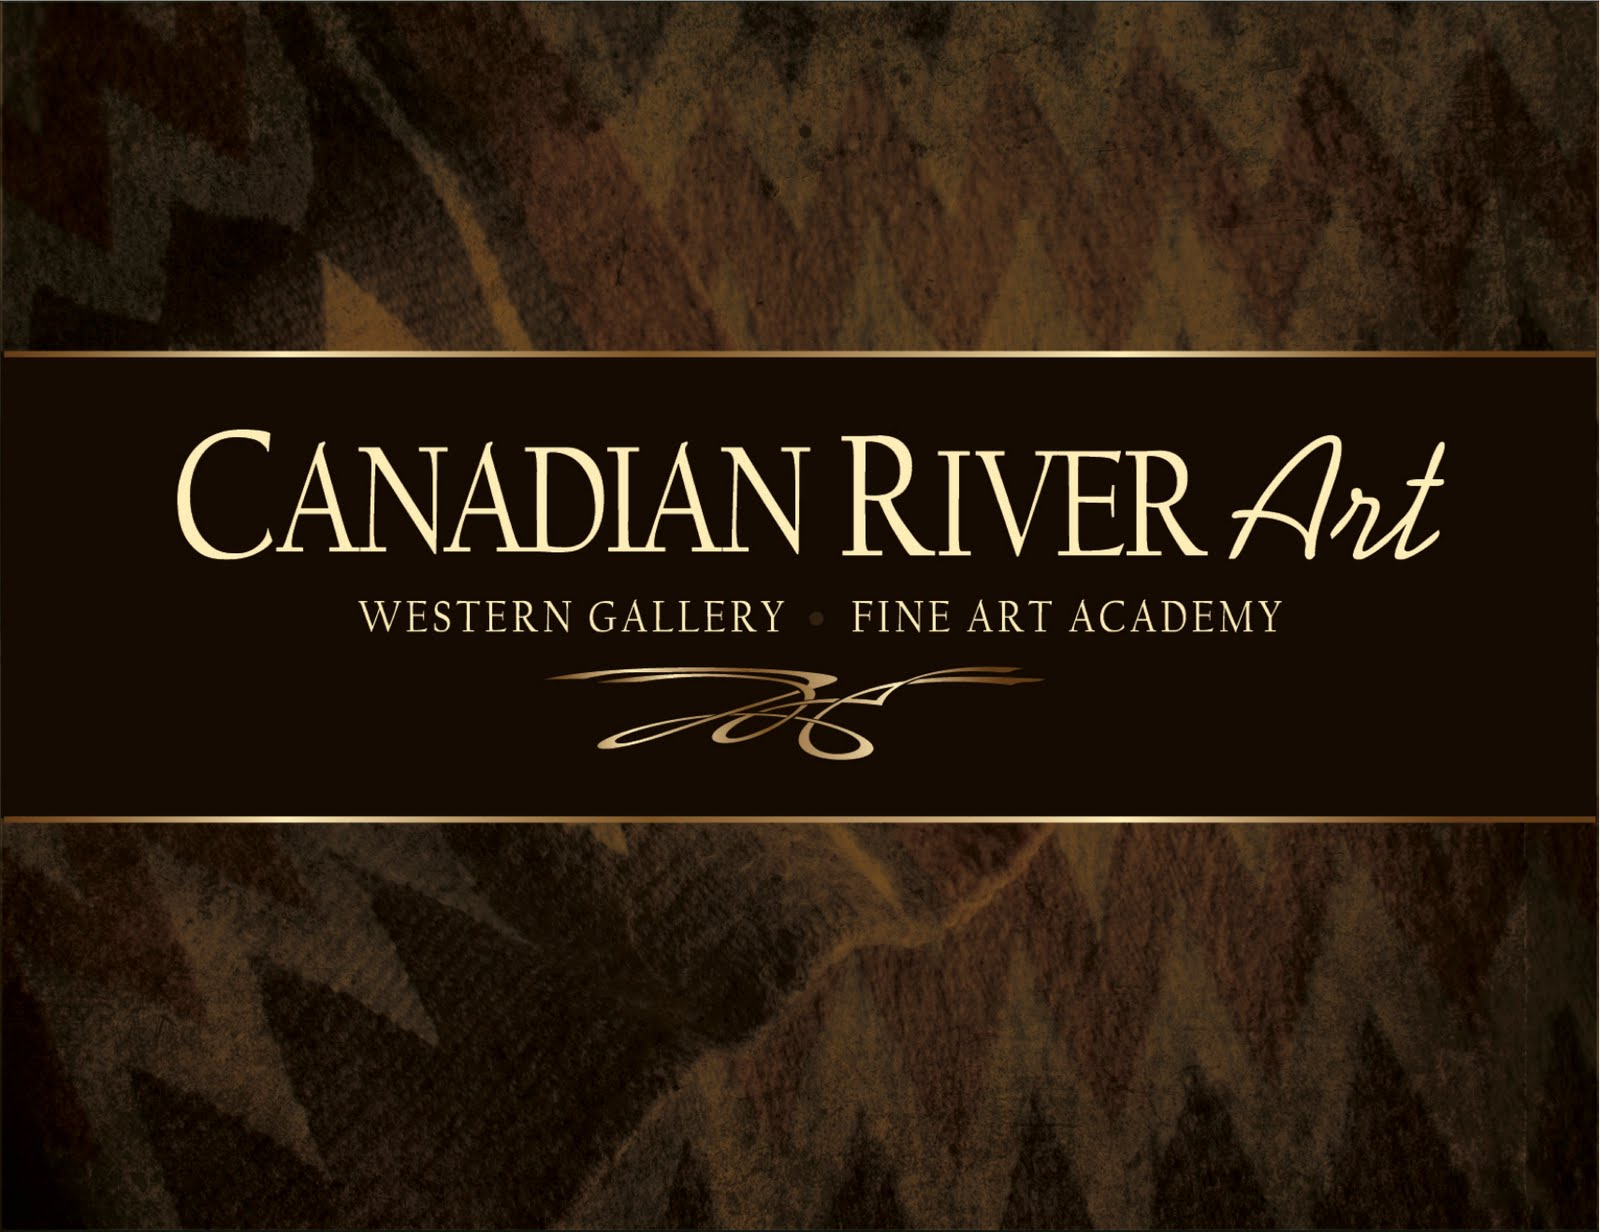 Canadian River Art Gallery